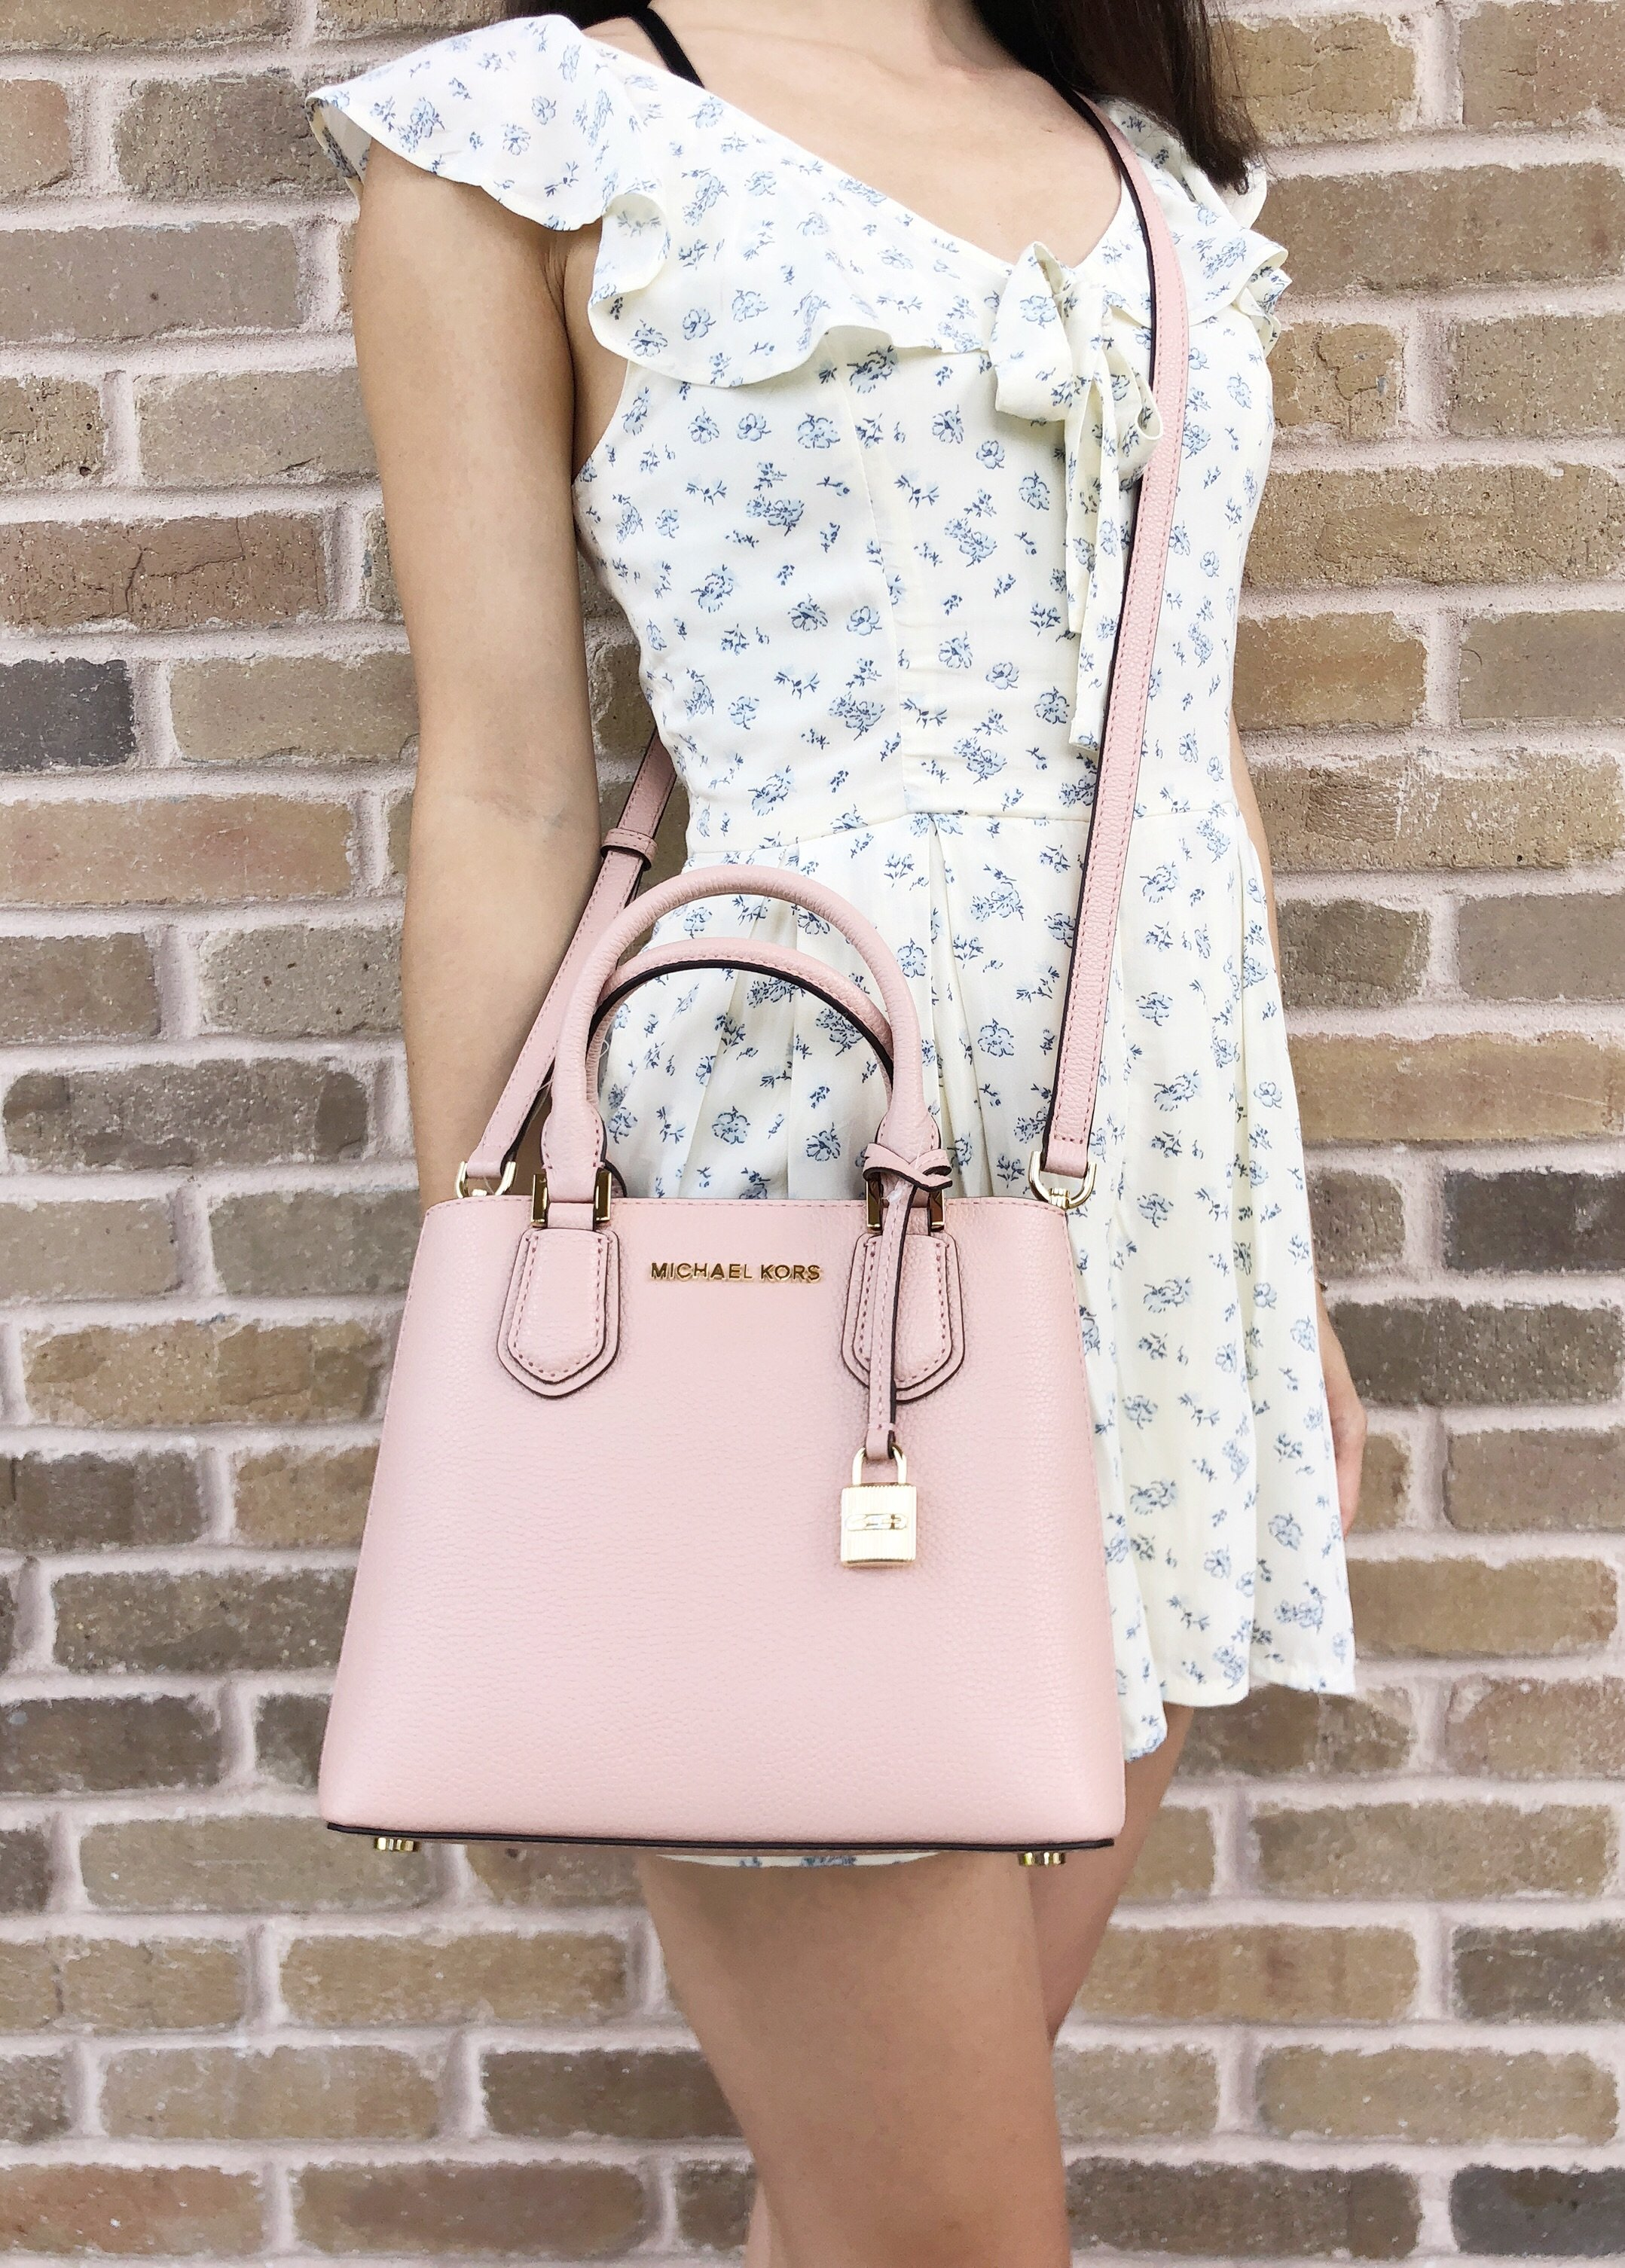 8a83f8ea4580 Michael Kors Adele Mercer Medium Messenger Bag Pastel Pink  MK  Handbags   MichaelKors